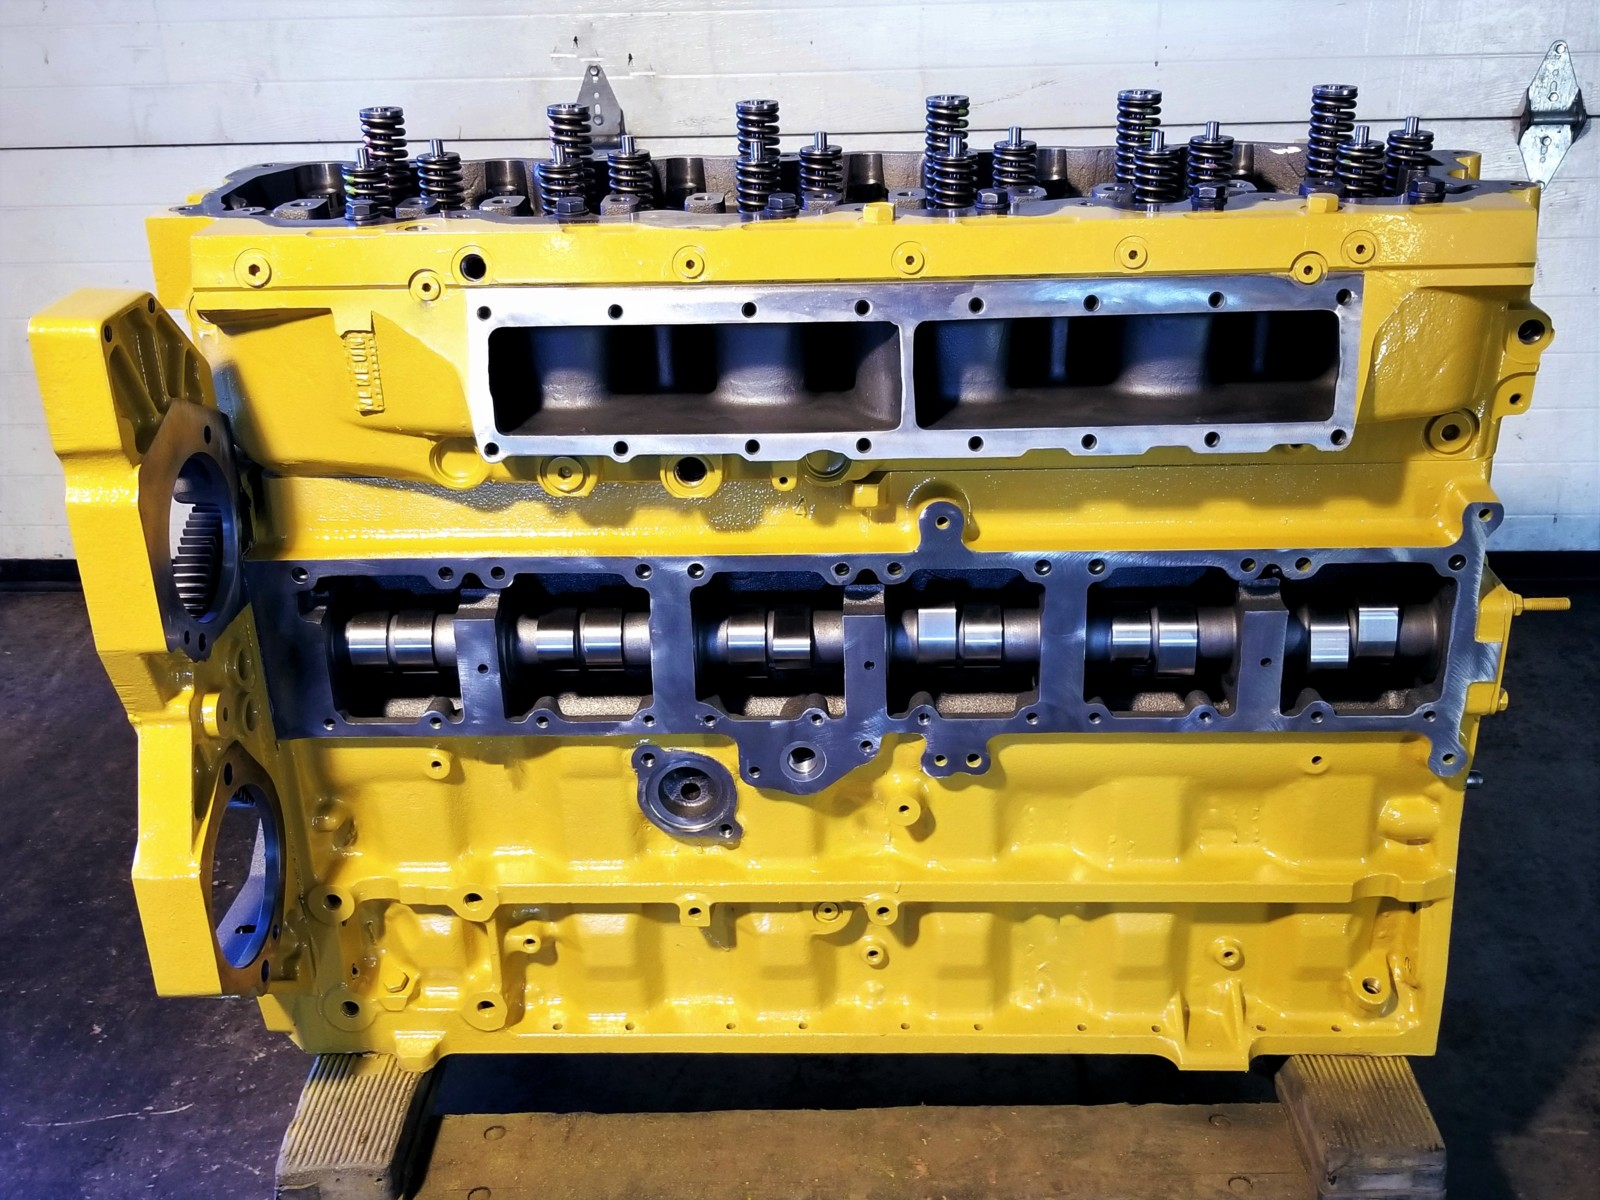 CAT C7 CATERPILLAR LONG BLOCK ENGINE - NEW GENUINE CATERPILLAR - NOT A REMAN